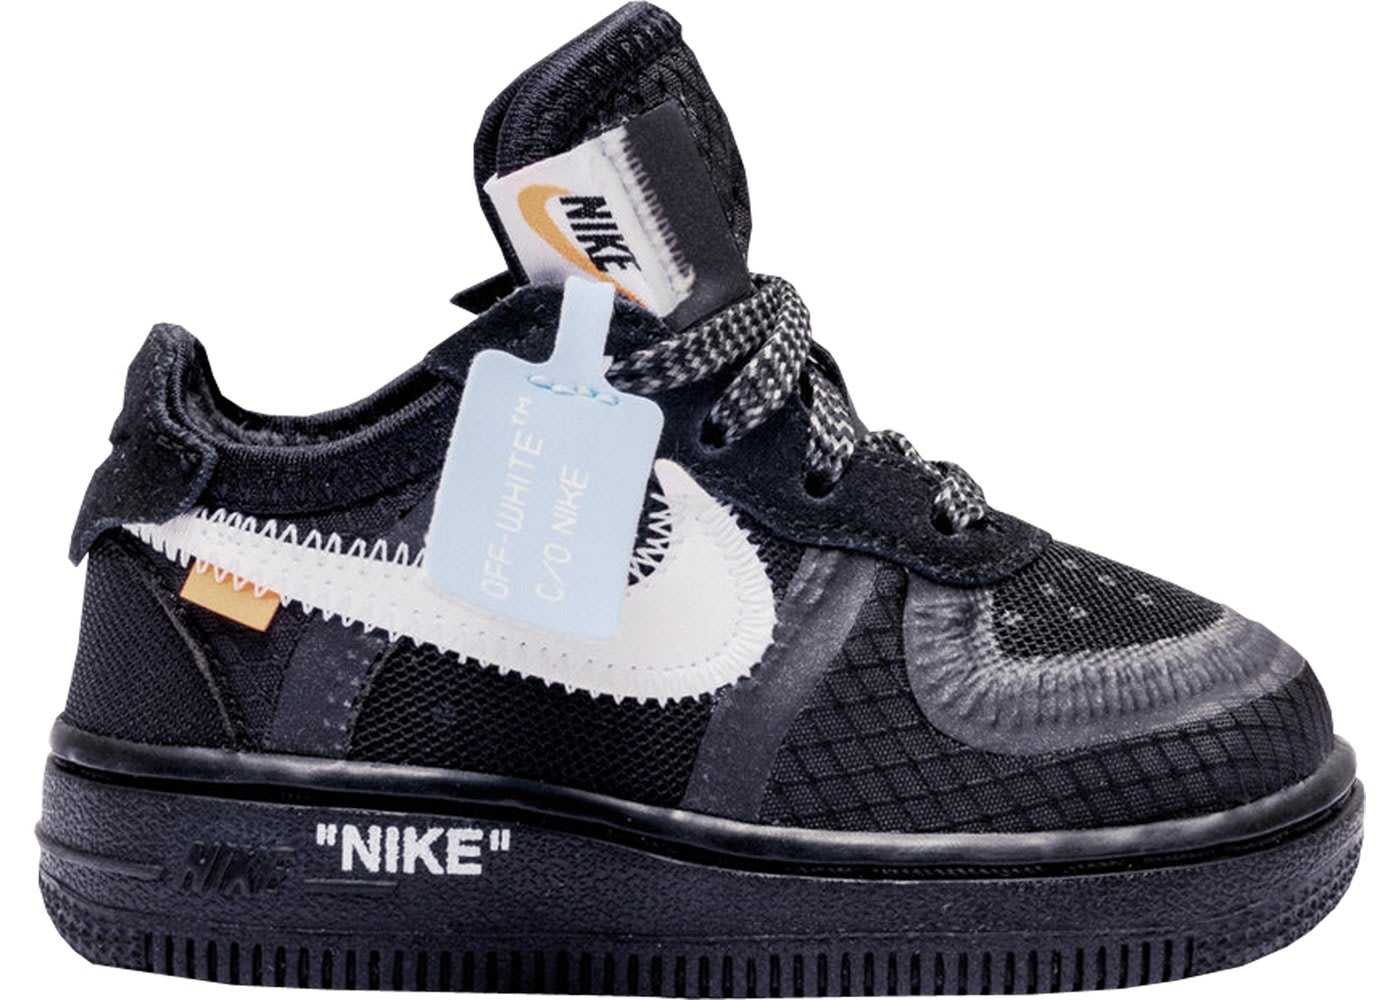 online store 88a13 047d1 Air Force 1 Low Off-White Black White PS黑色BV0853-001小童鞋